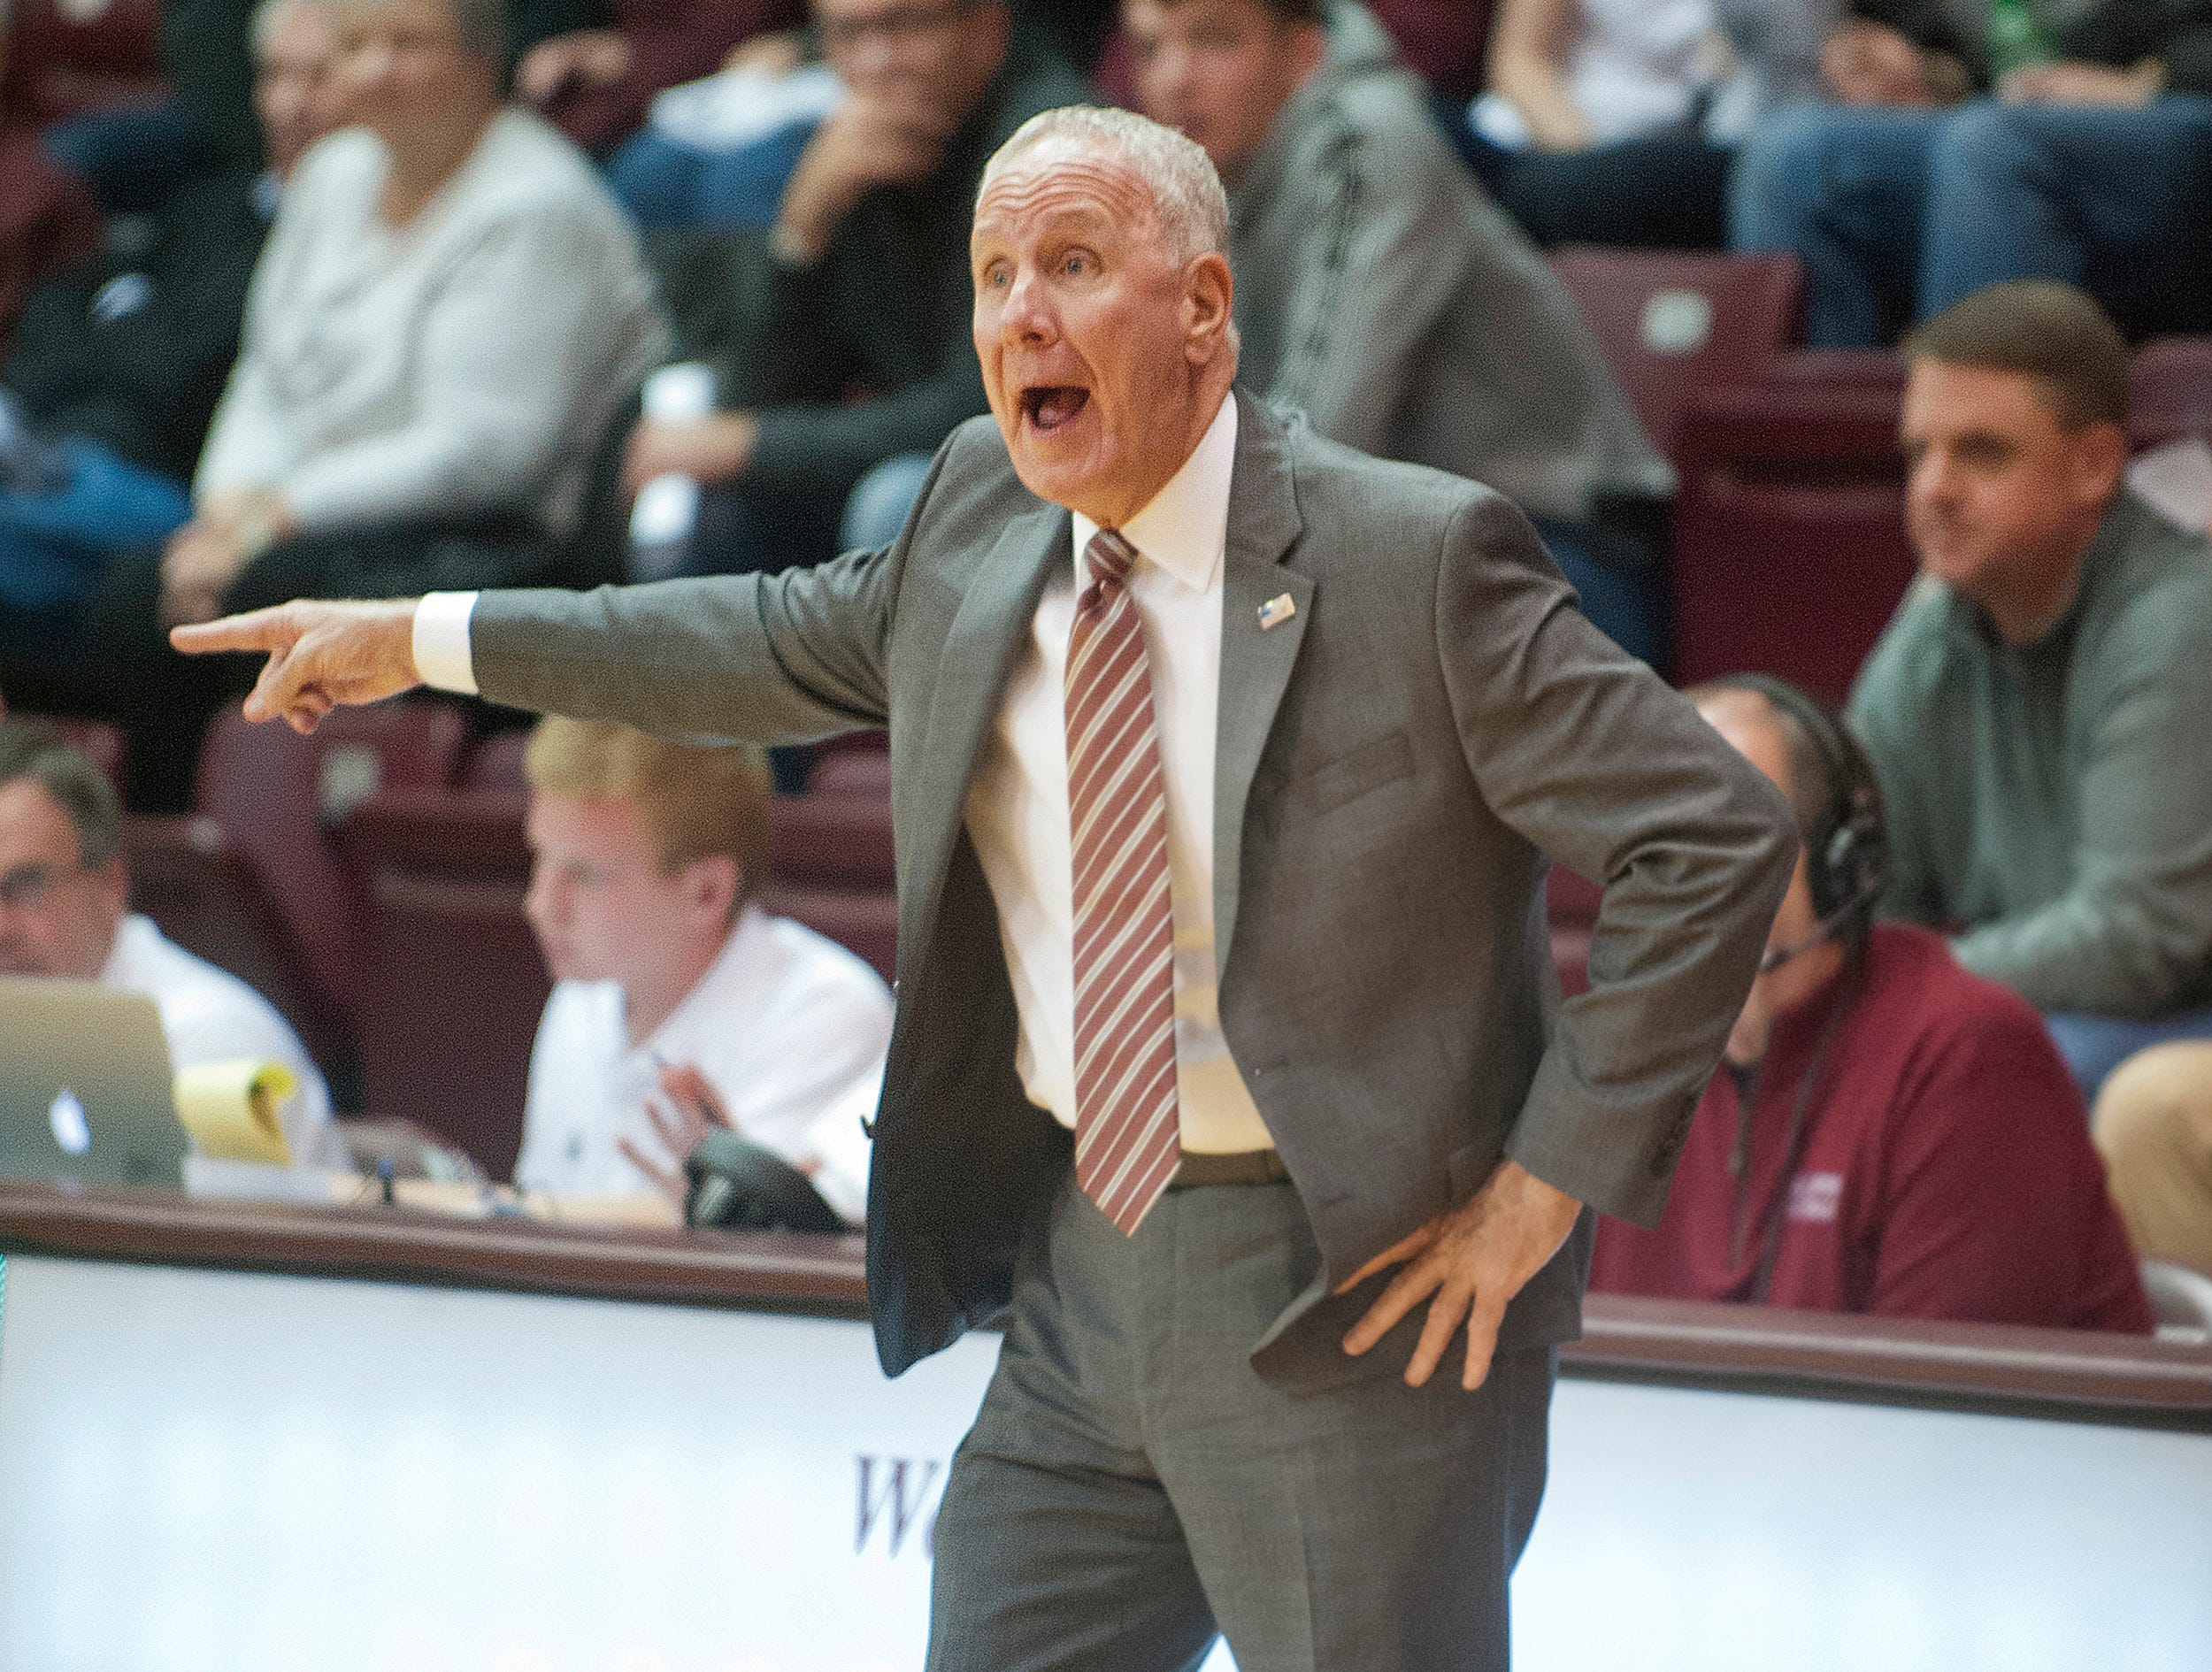 Bellarmine head basketball coach Scott Davenport yells instructions to his players on the floor during the game.18 December 2018